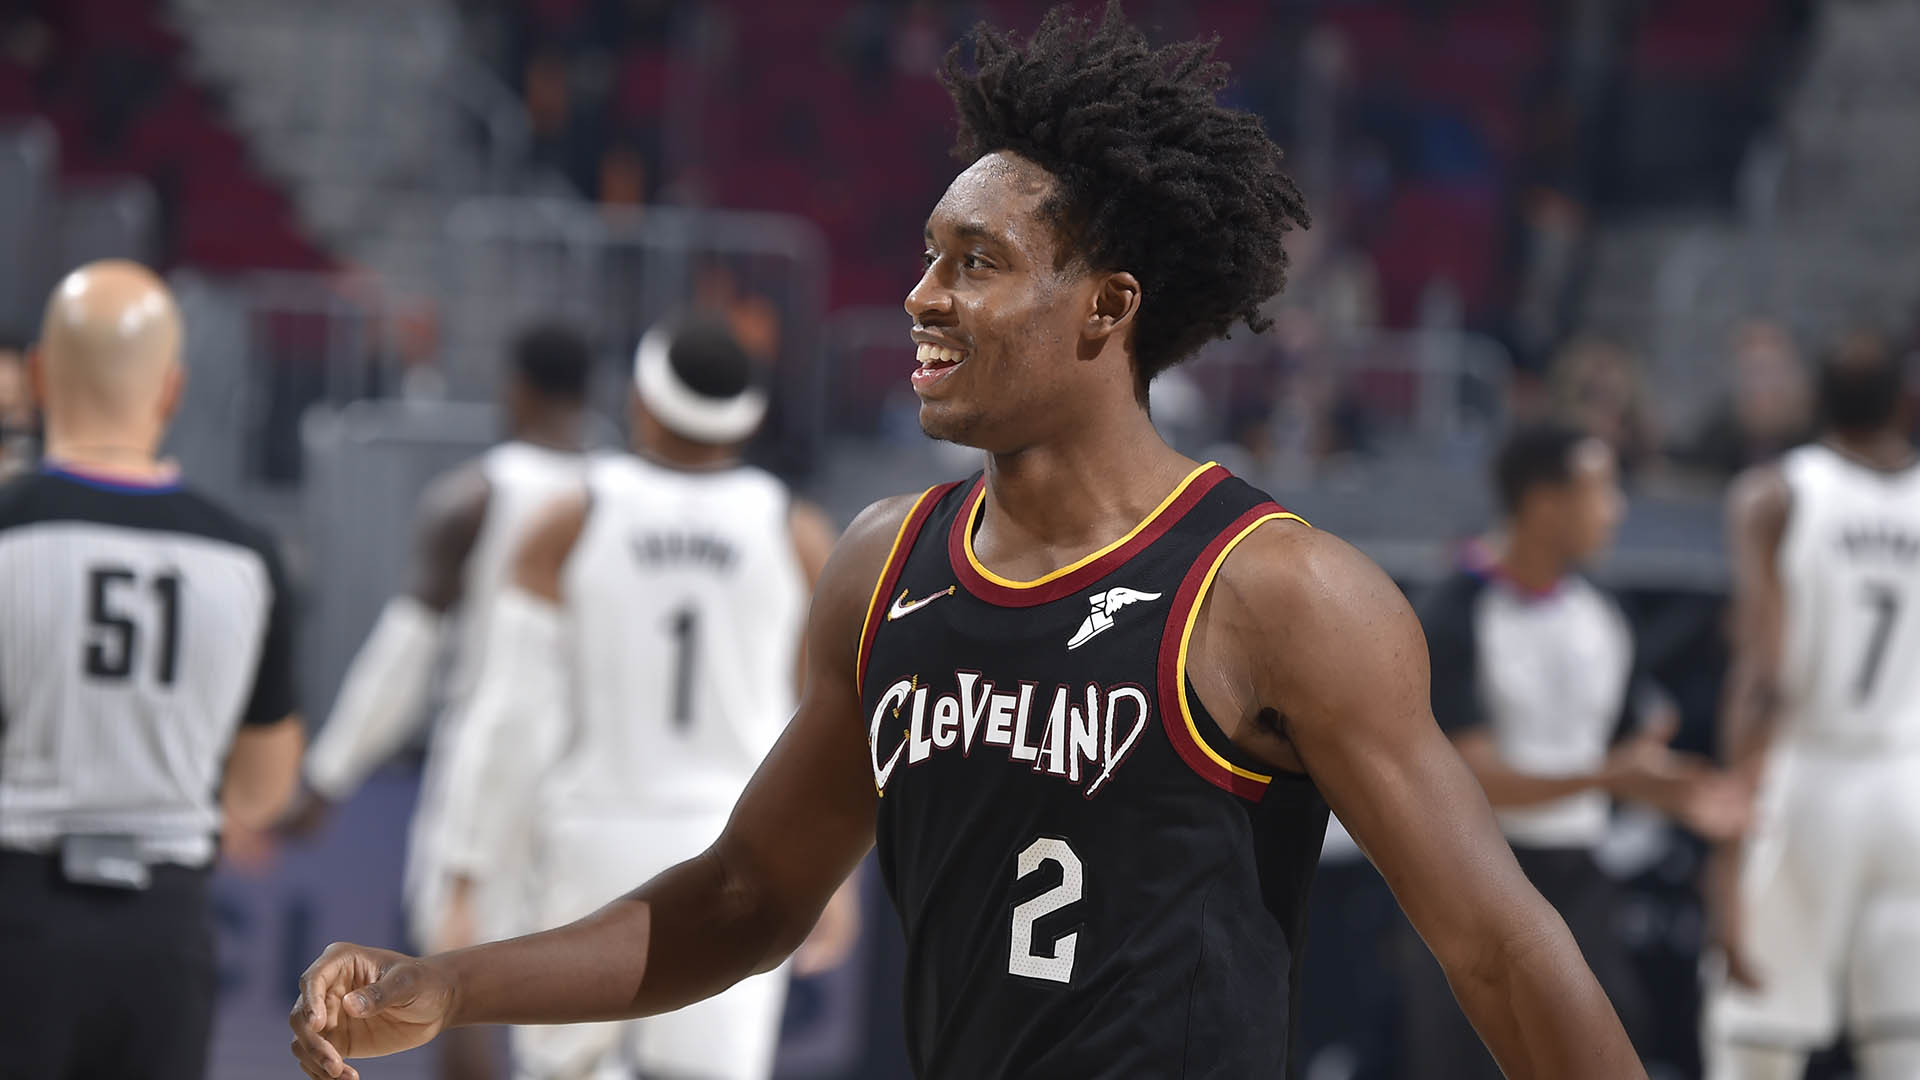 Collin Sexton's stock rises as he leads Cavaliers to playoff contention